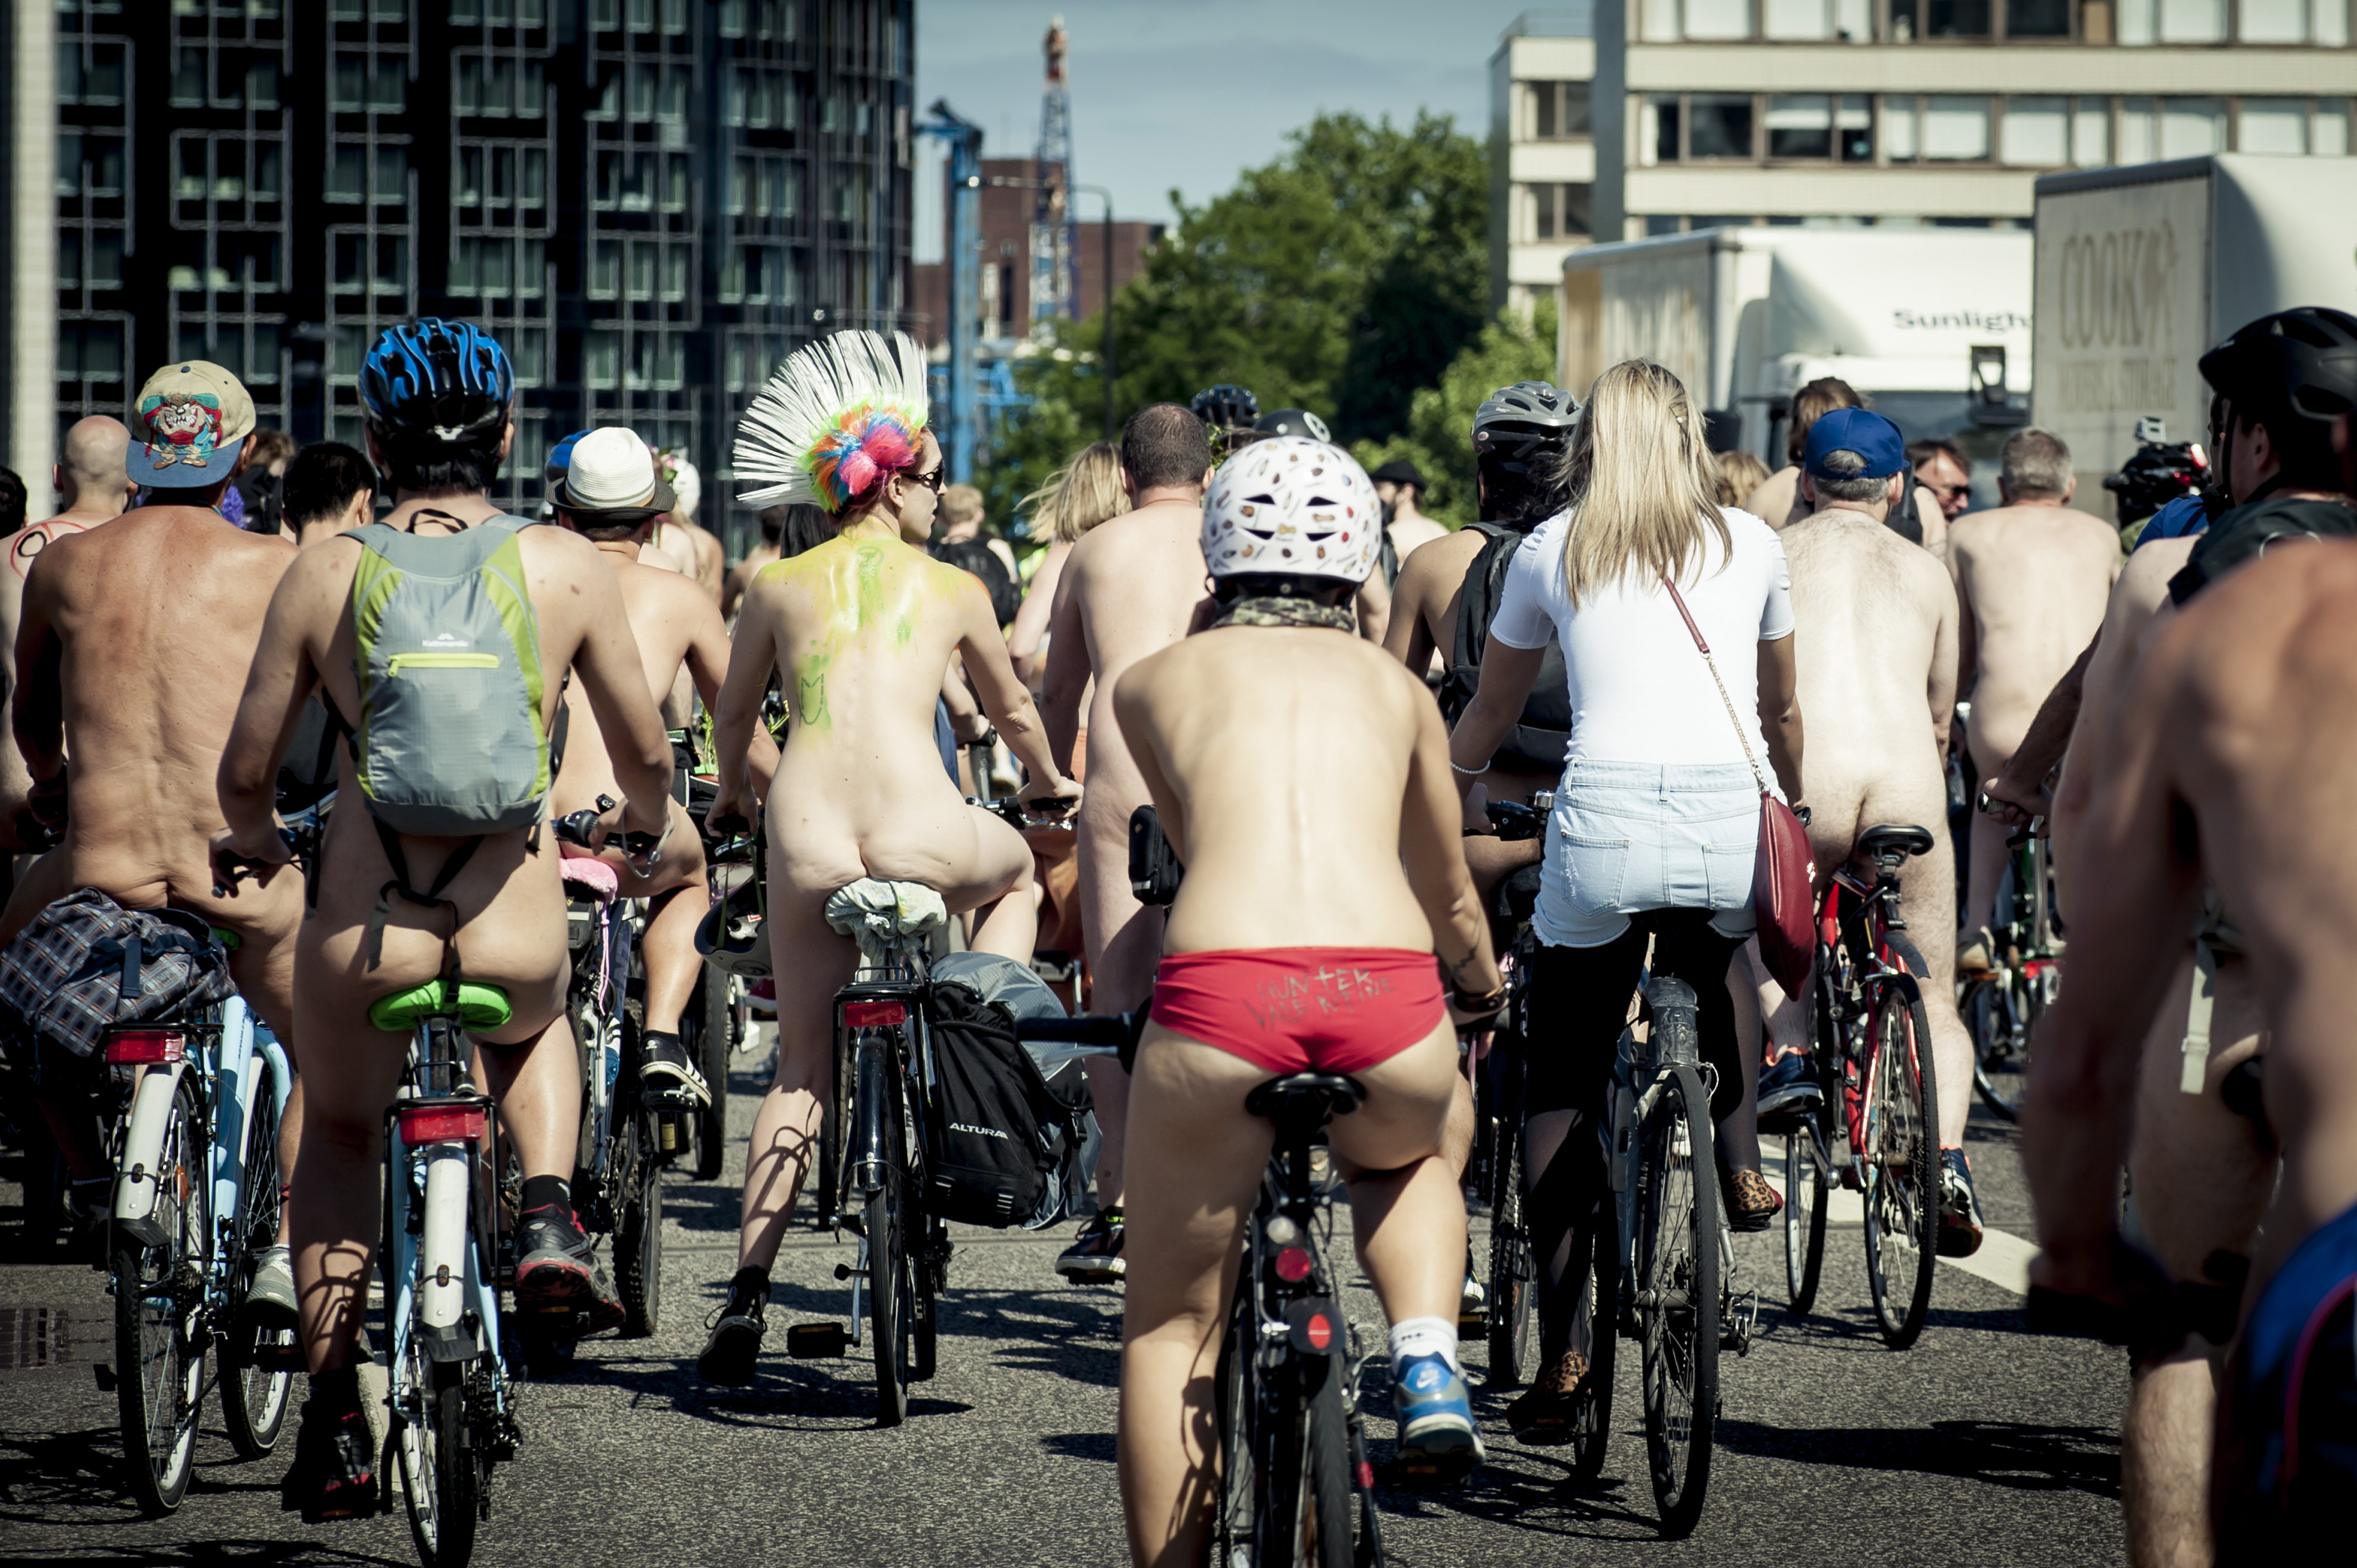 World Naked Bike Ride in London on Aug. 6, 2013.